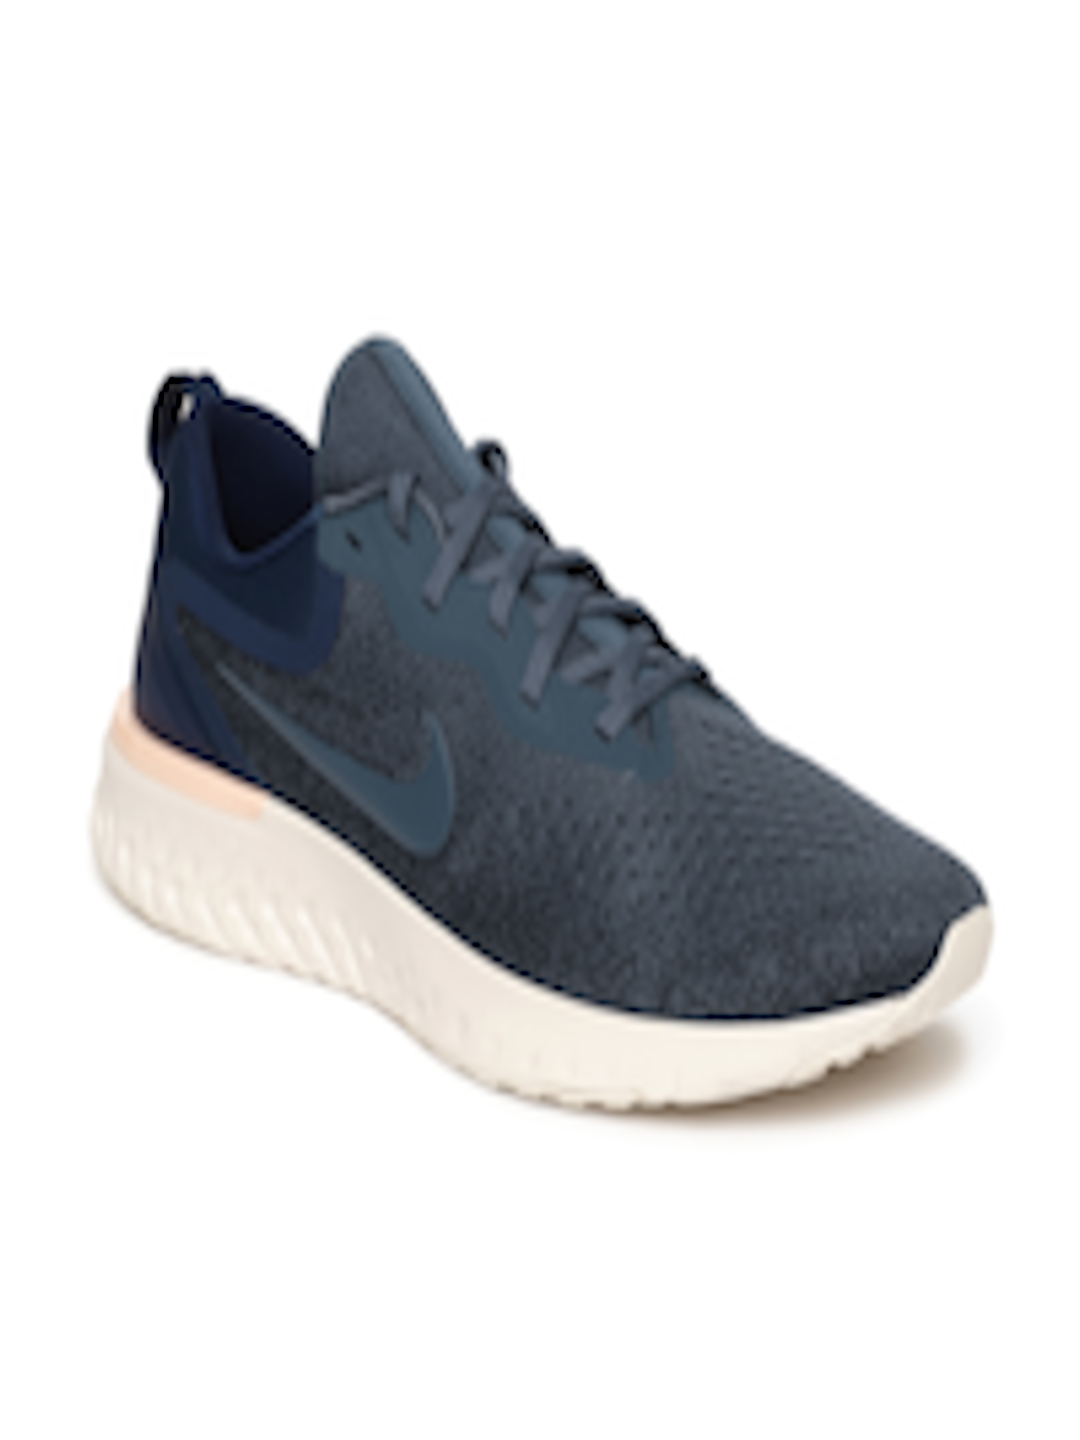 f1b8562ff0eac9 Buy Nike Men Blue ODYSSEY REACT Running Shoes - Sports Shoes for Men  6676872